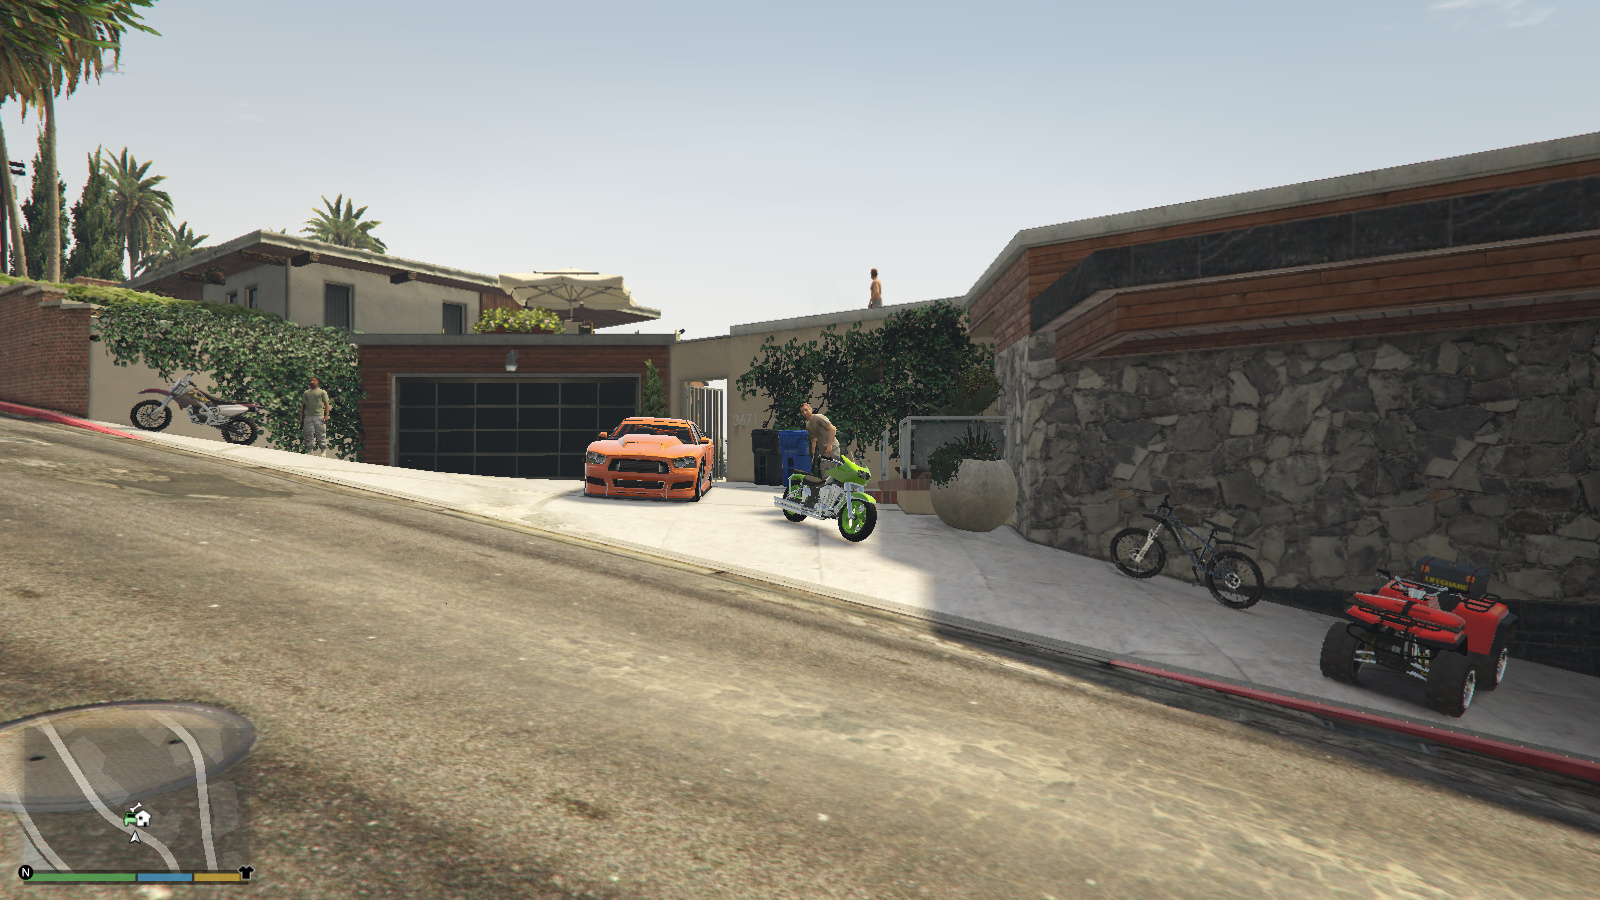 Cool Houses for Protagonists - GTA5-Mods.com